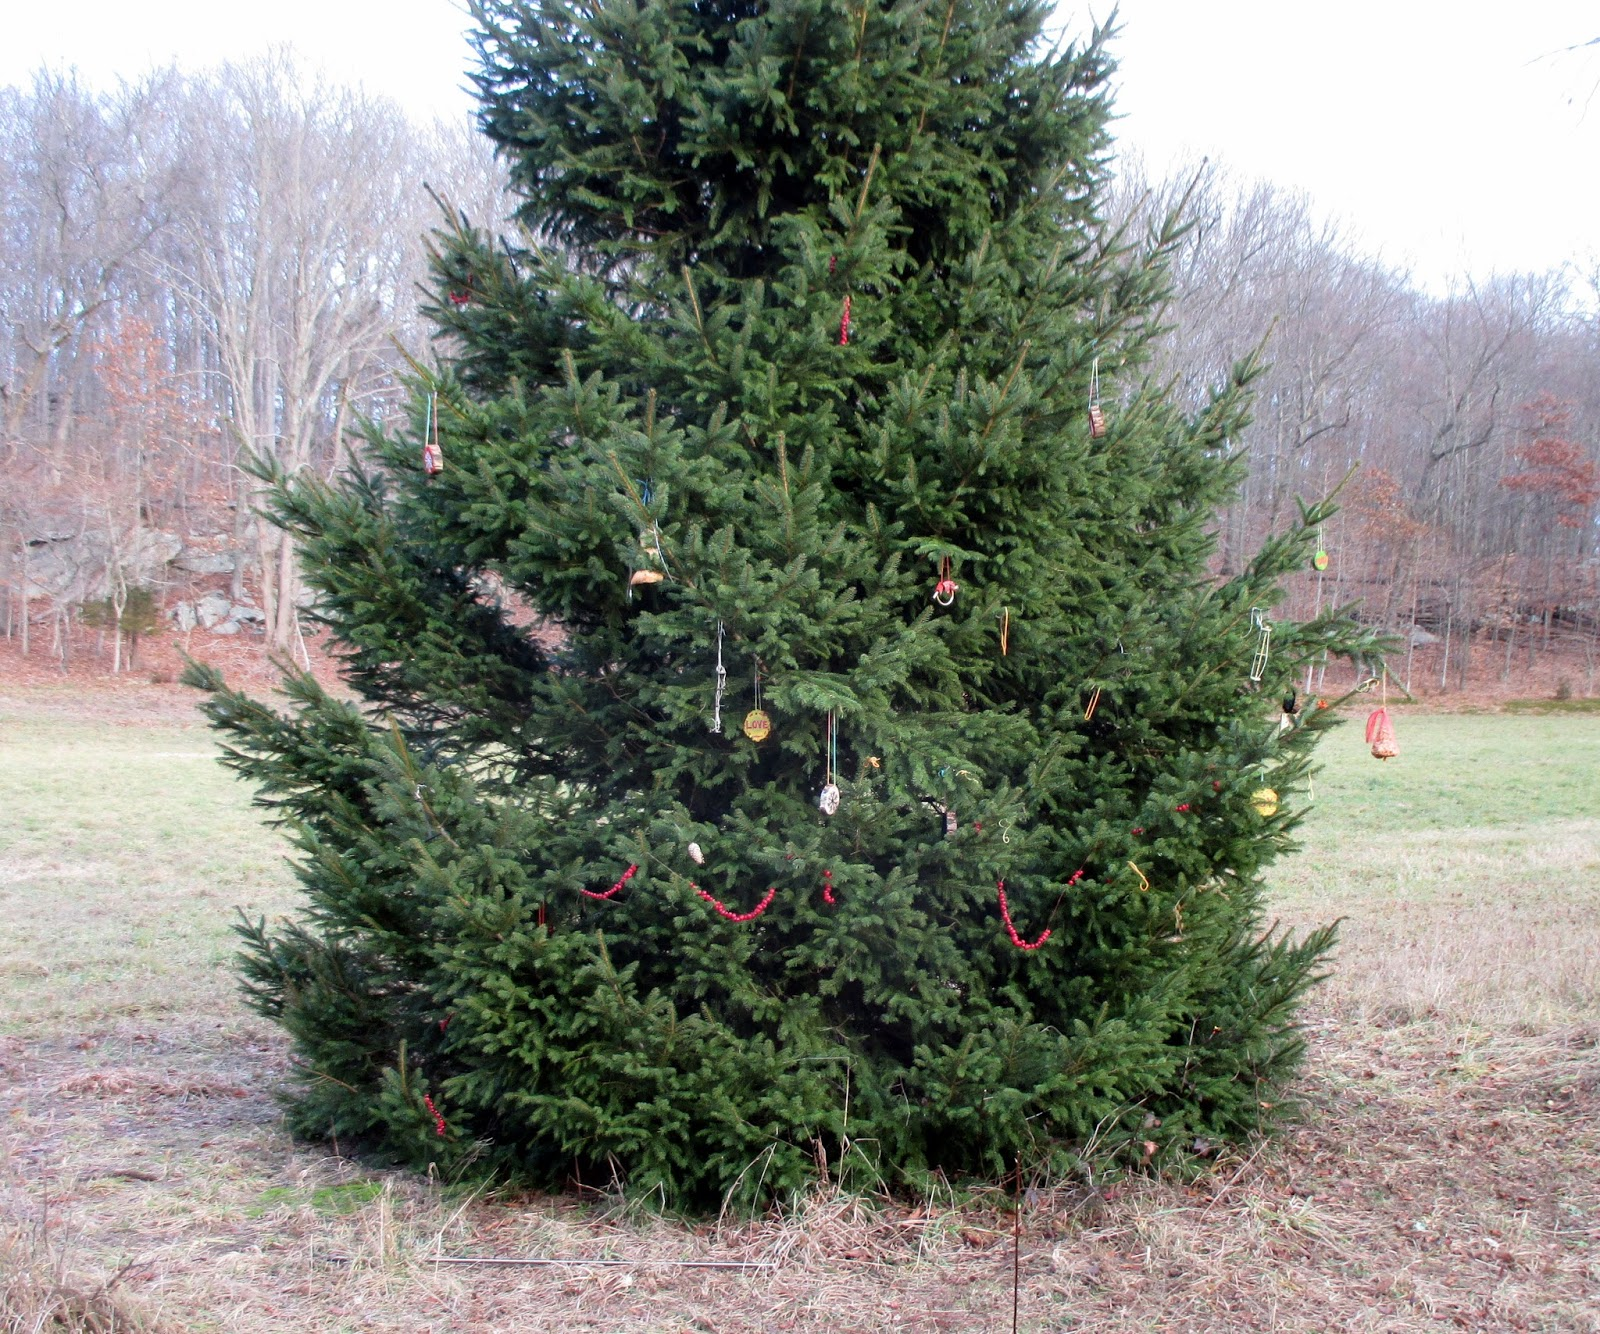 Shelton Trails Committee: I\'m Dreaming of a Warm Christmas